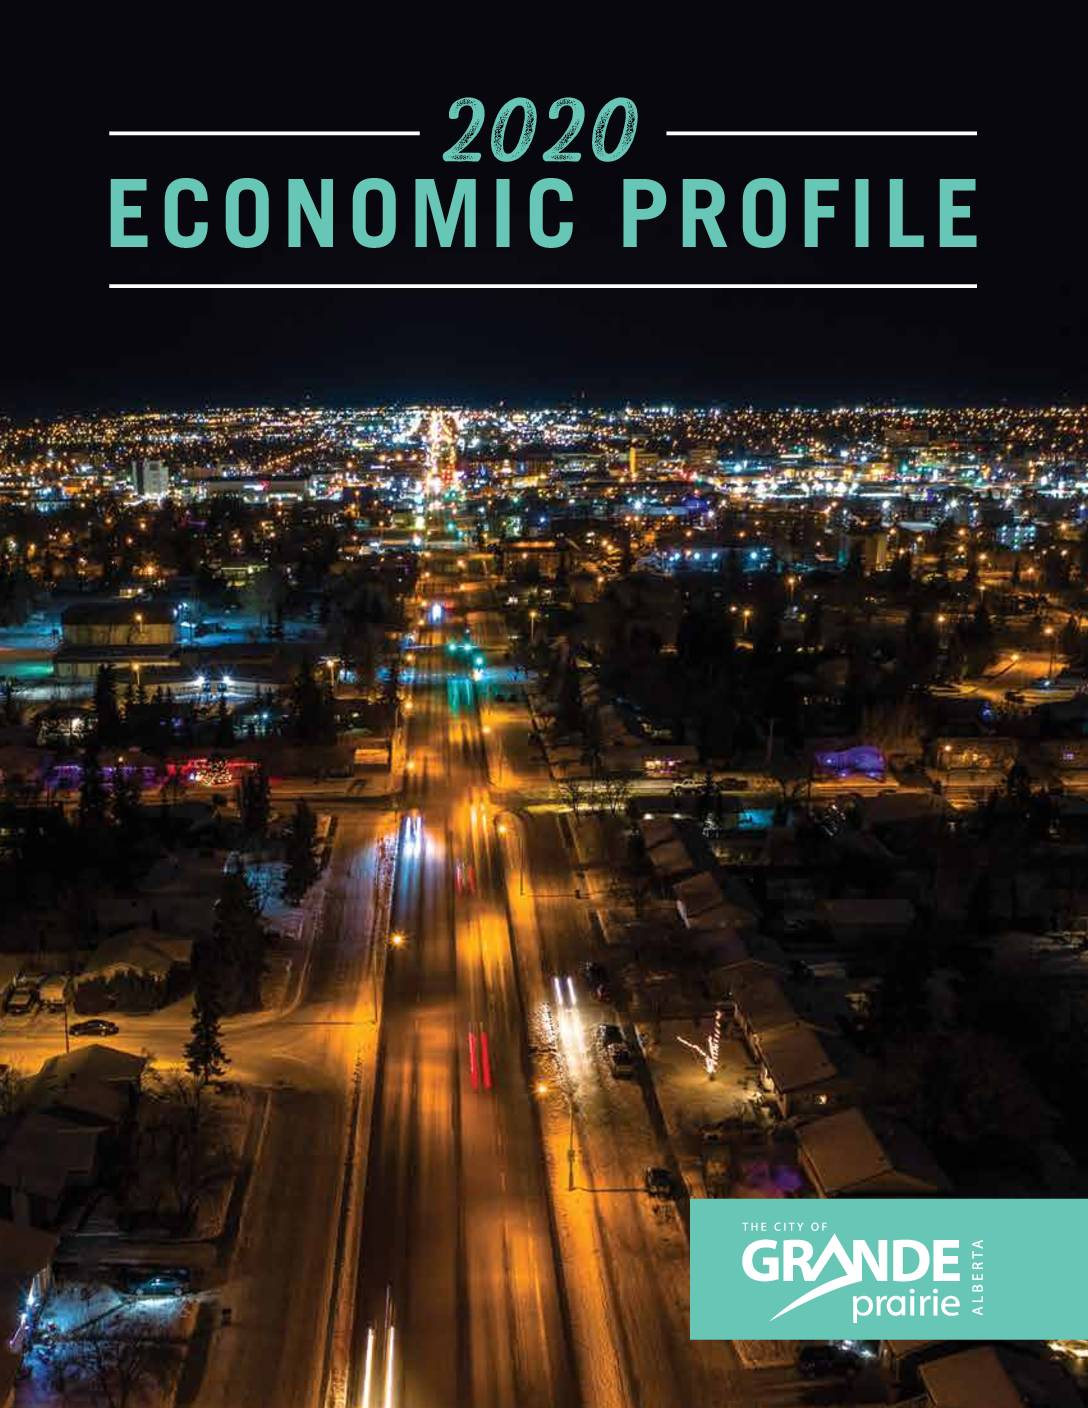 City of Grande Prairie – 2020 Economic Profile